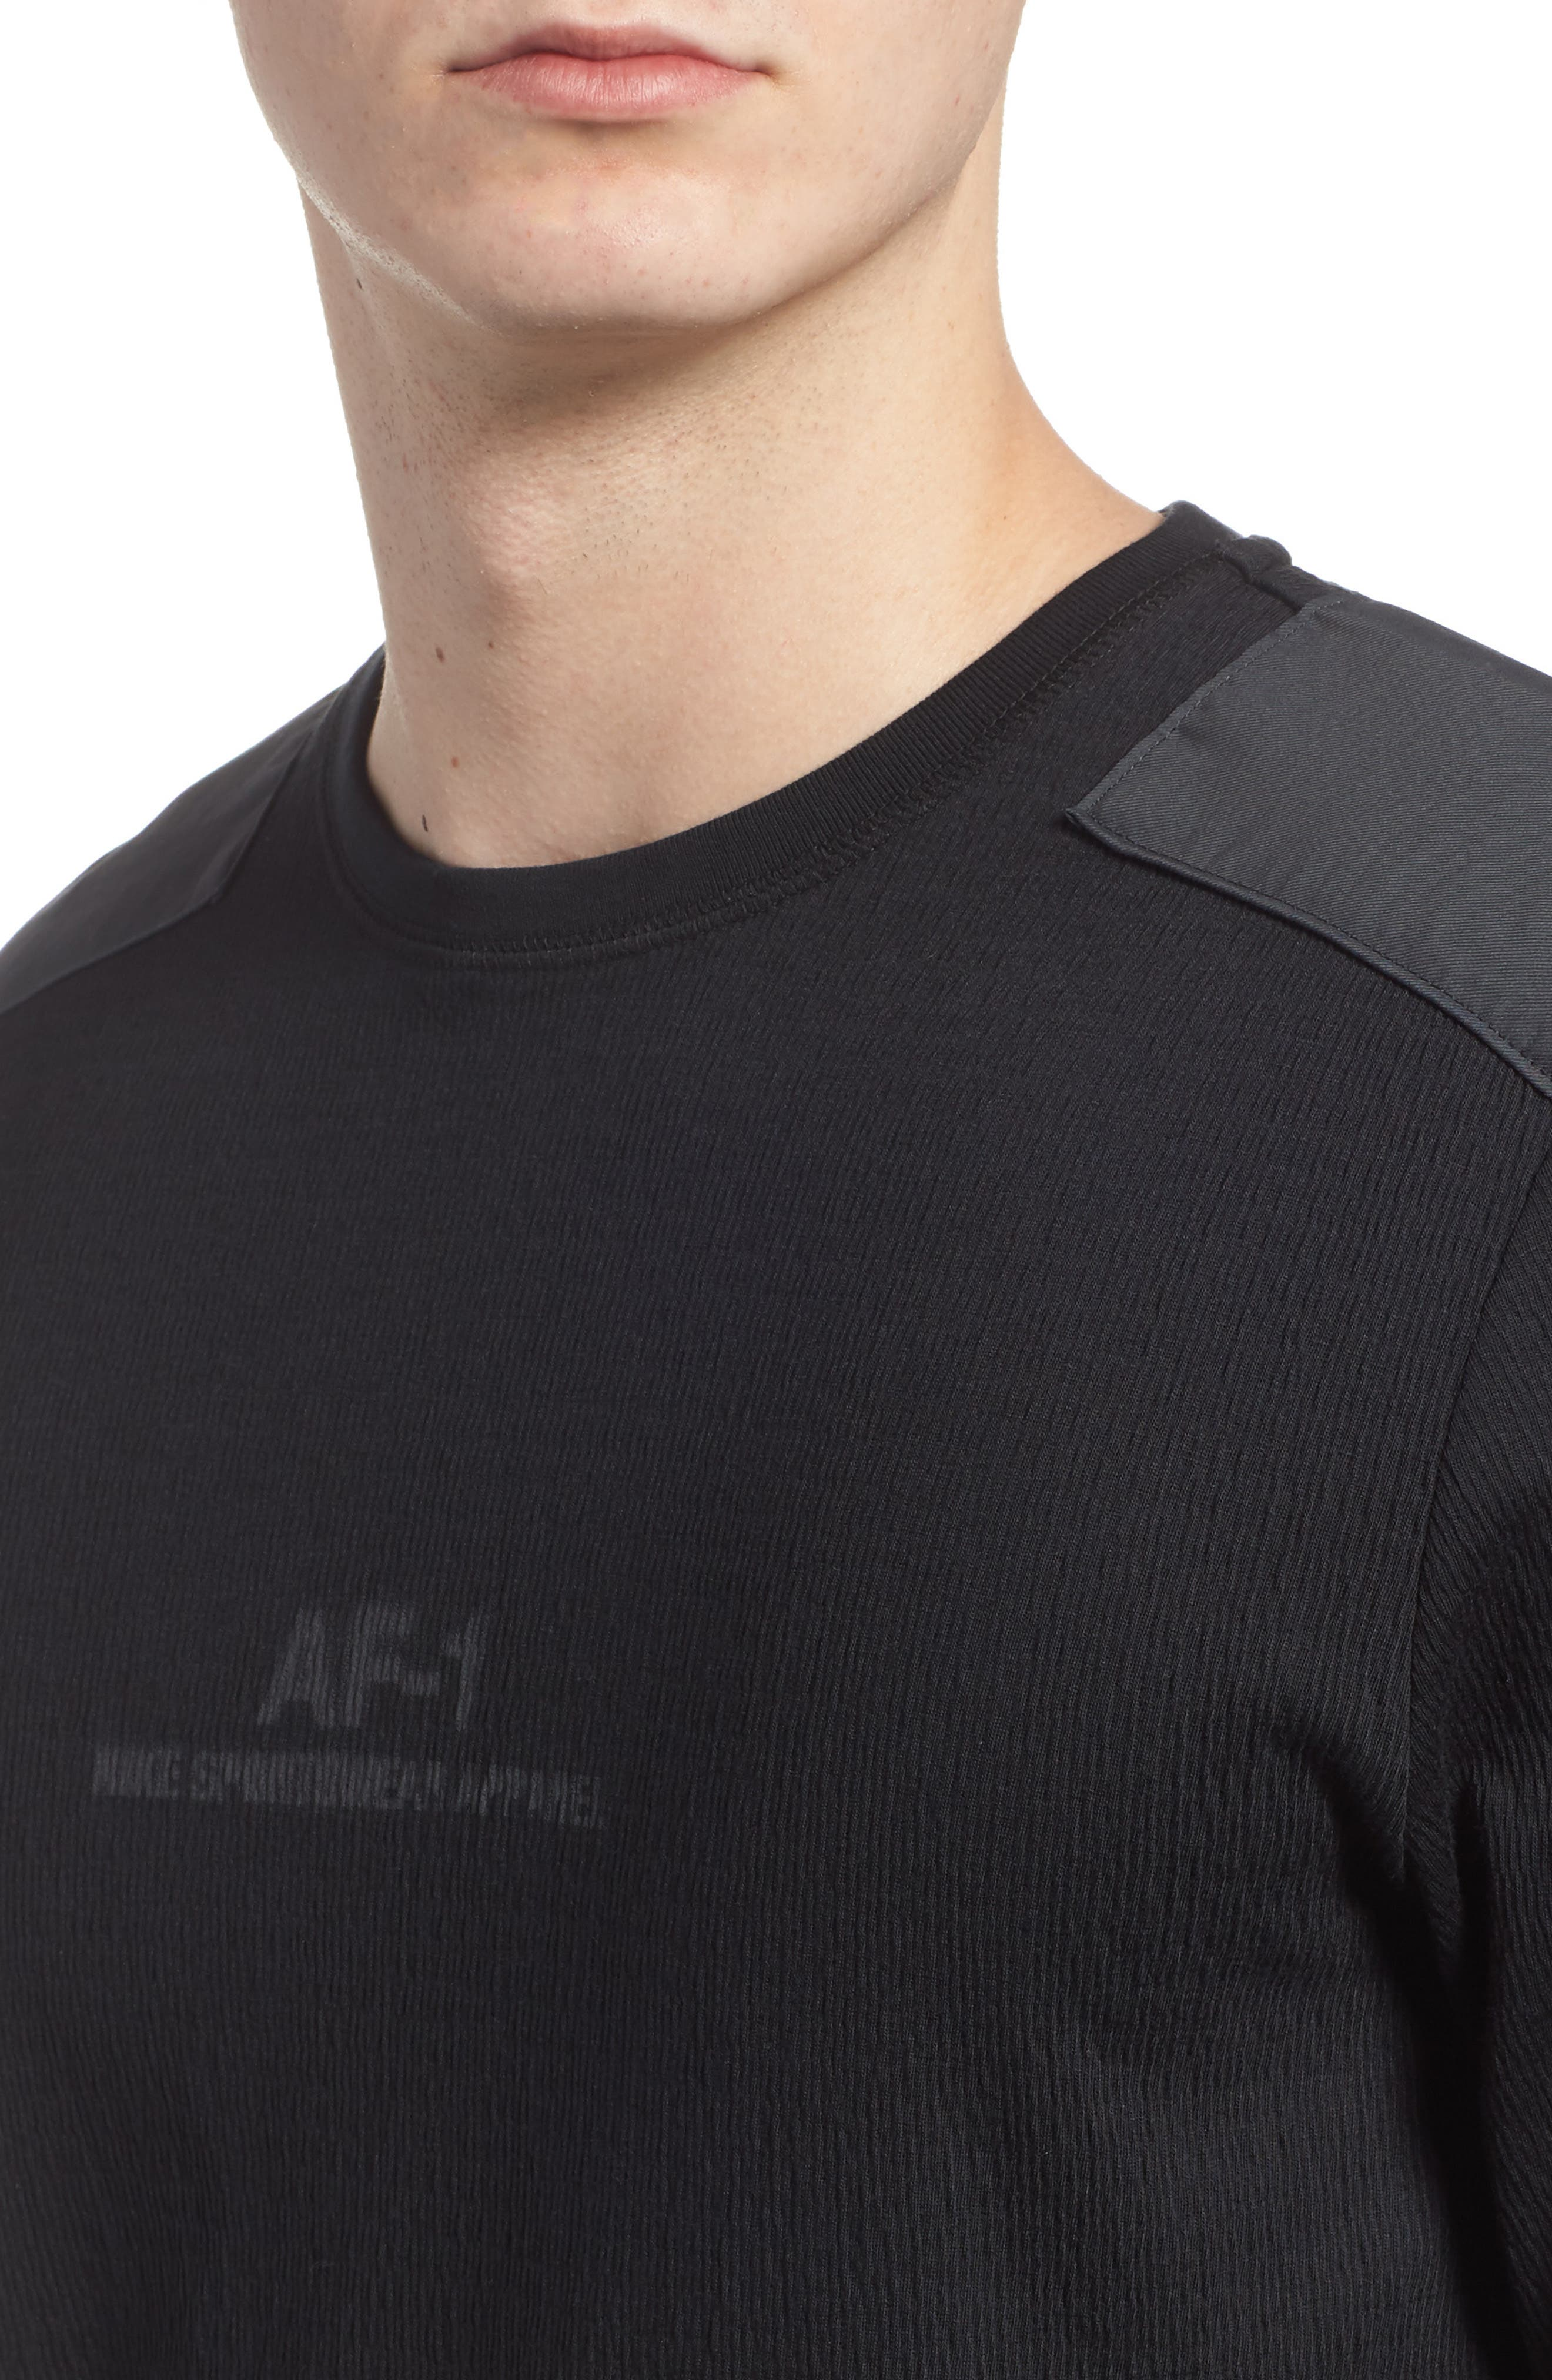 Sportswear AF-1 Long Sleeve Shirt,                             Alternate thumbnail 4, color,                             010